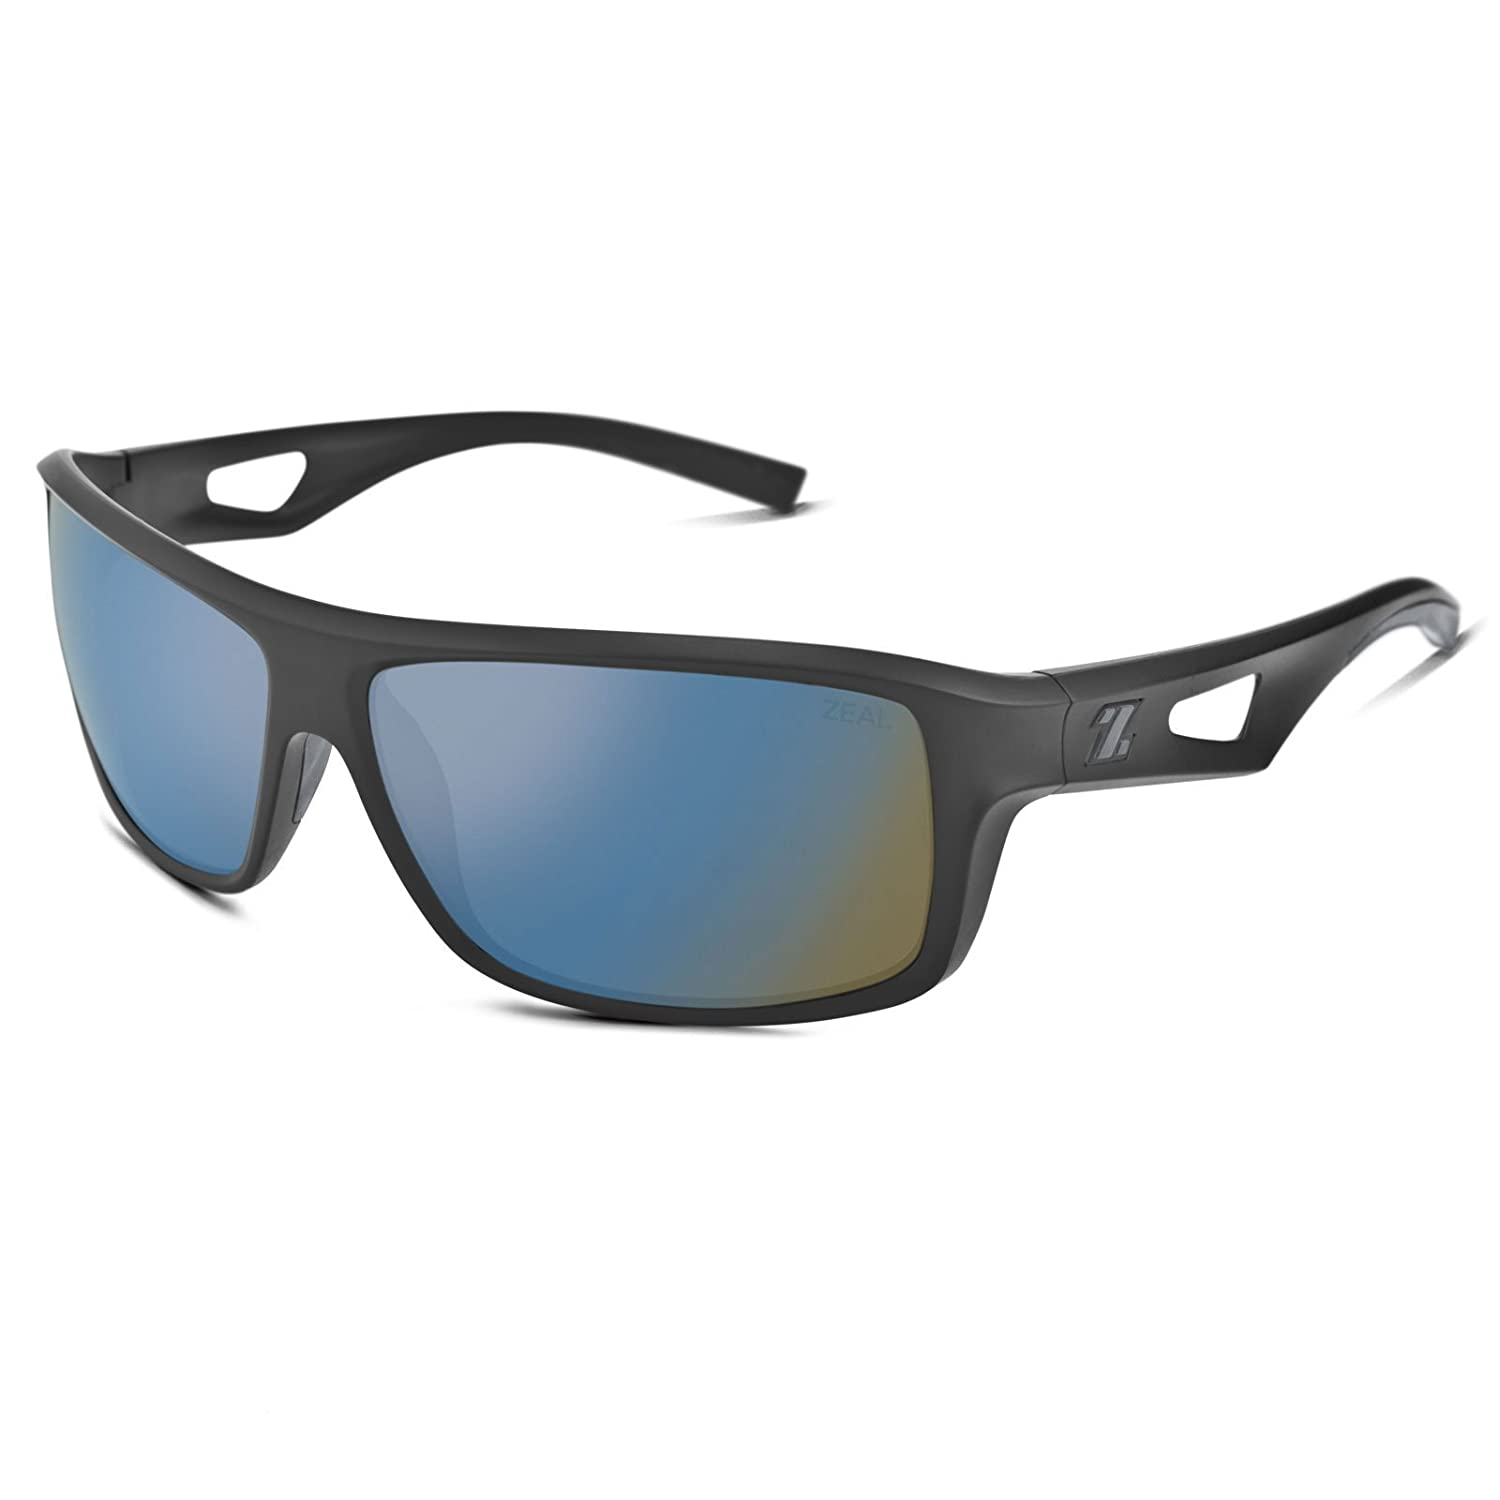 800693cee4b Amazon.com  Zeal Optics Range Polarized Sunglasses - Black Frame with  Bluebird HT Lens  Sports   Outdoors